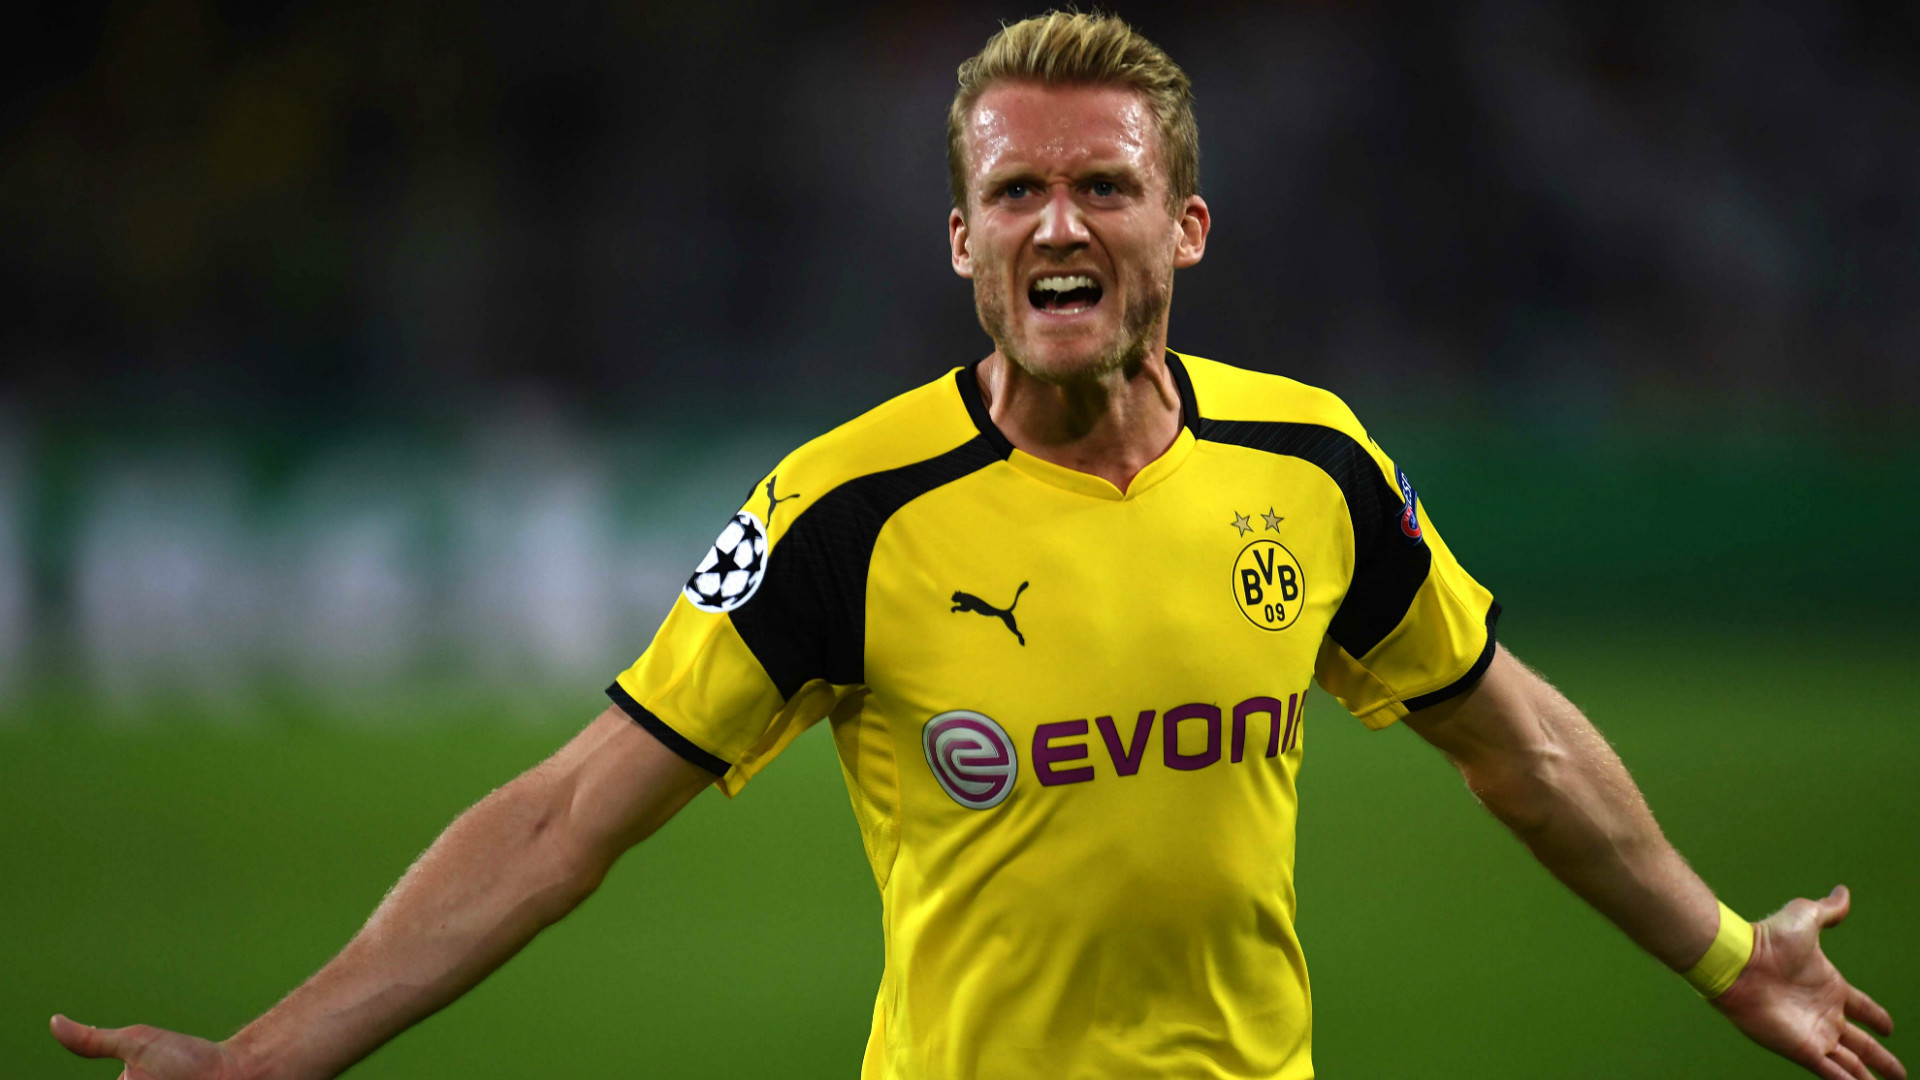 Borussia Dortmund Wallpapers Images Photos Pictures